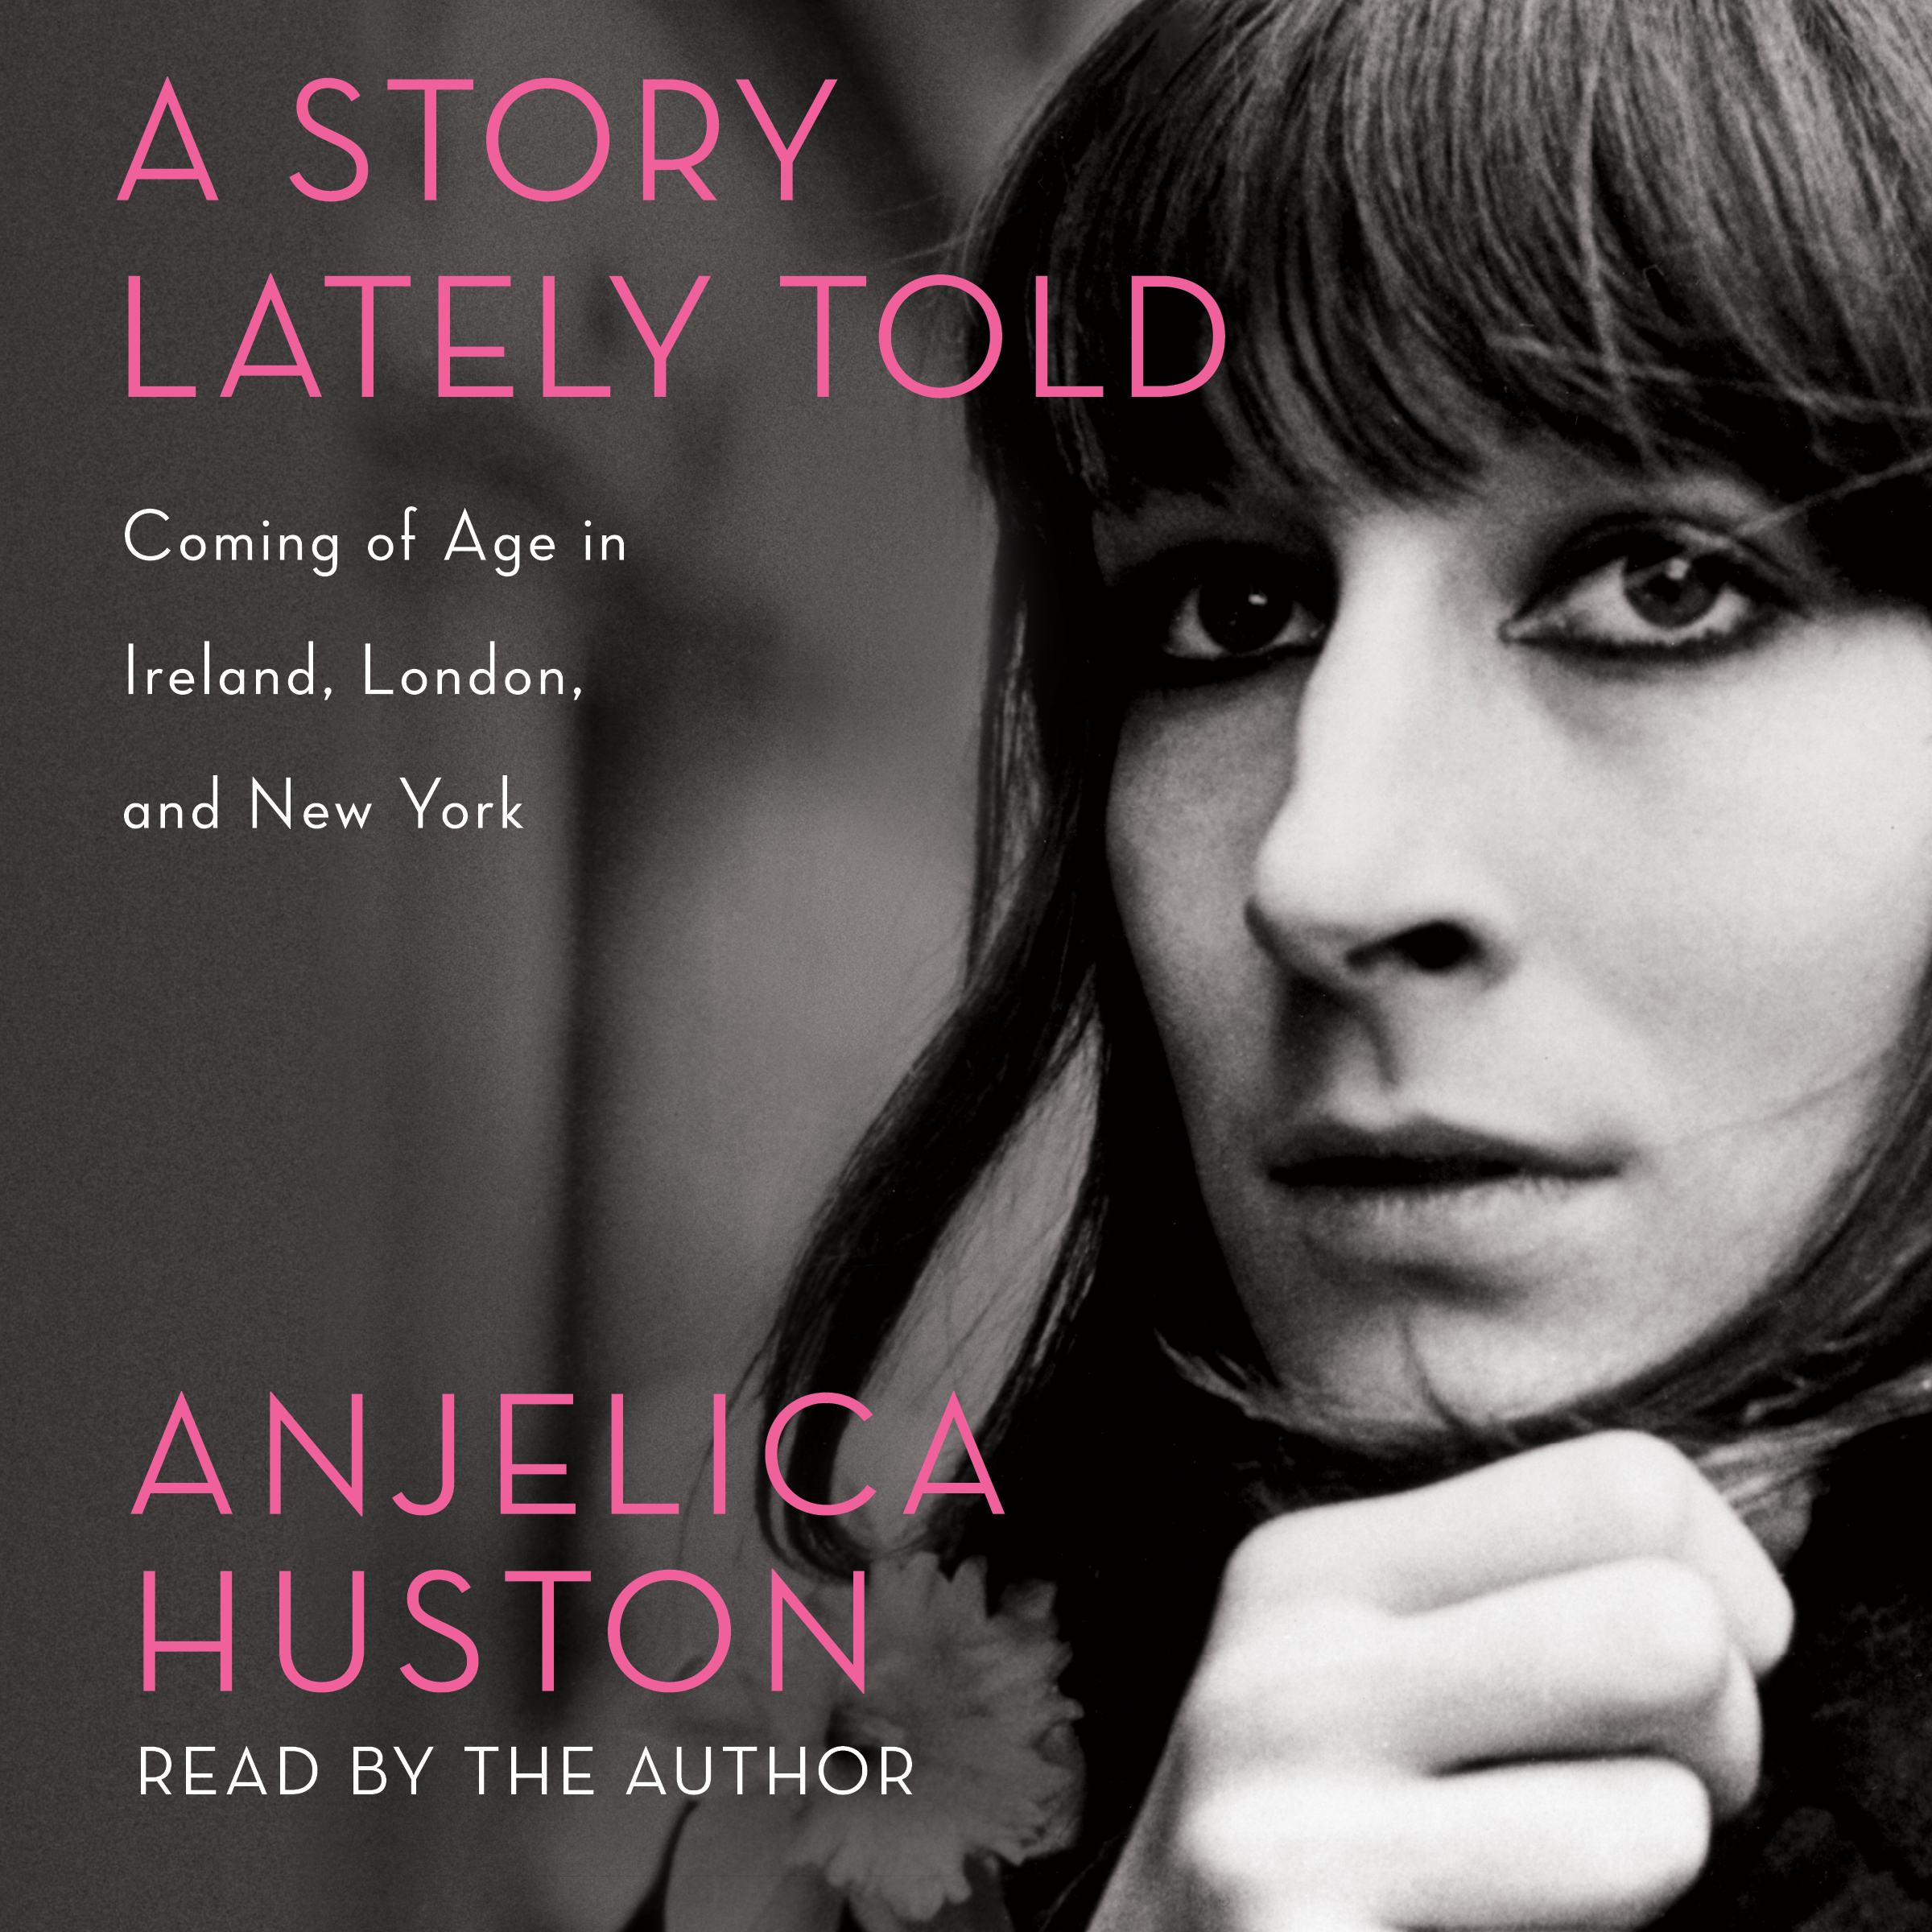 a story lately told audiobookanjelica huston | official